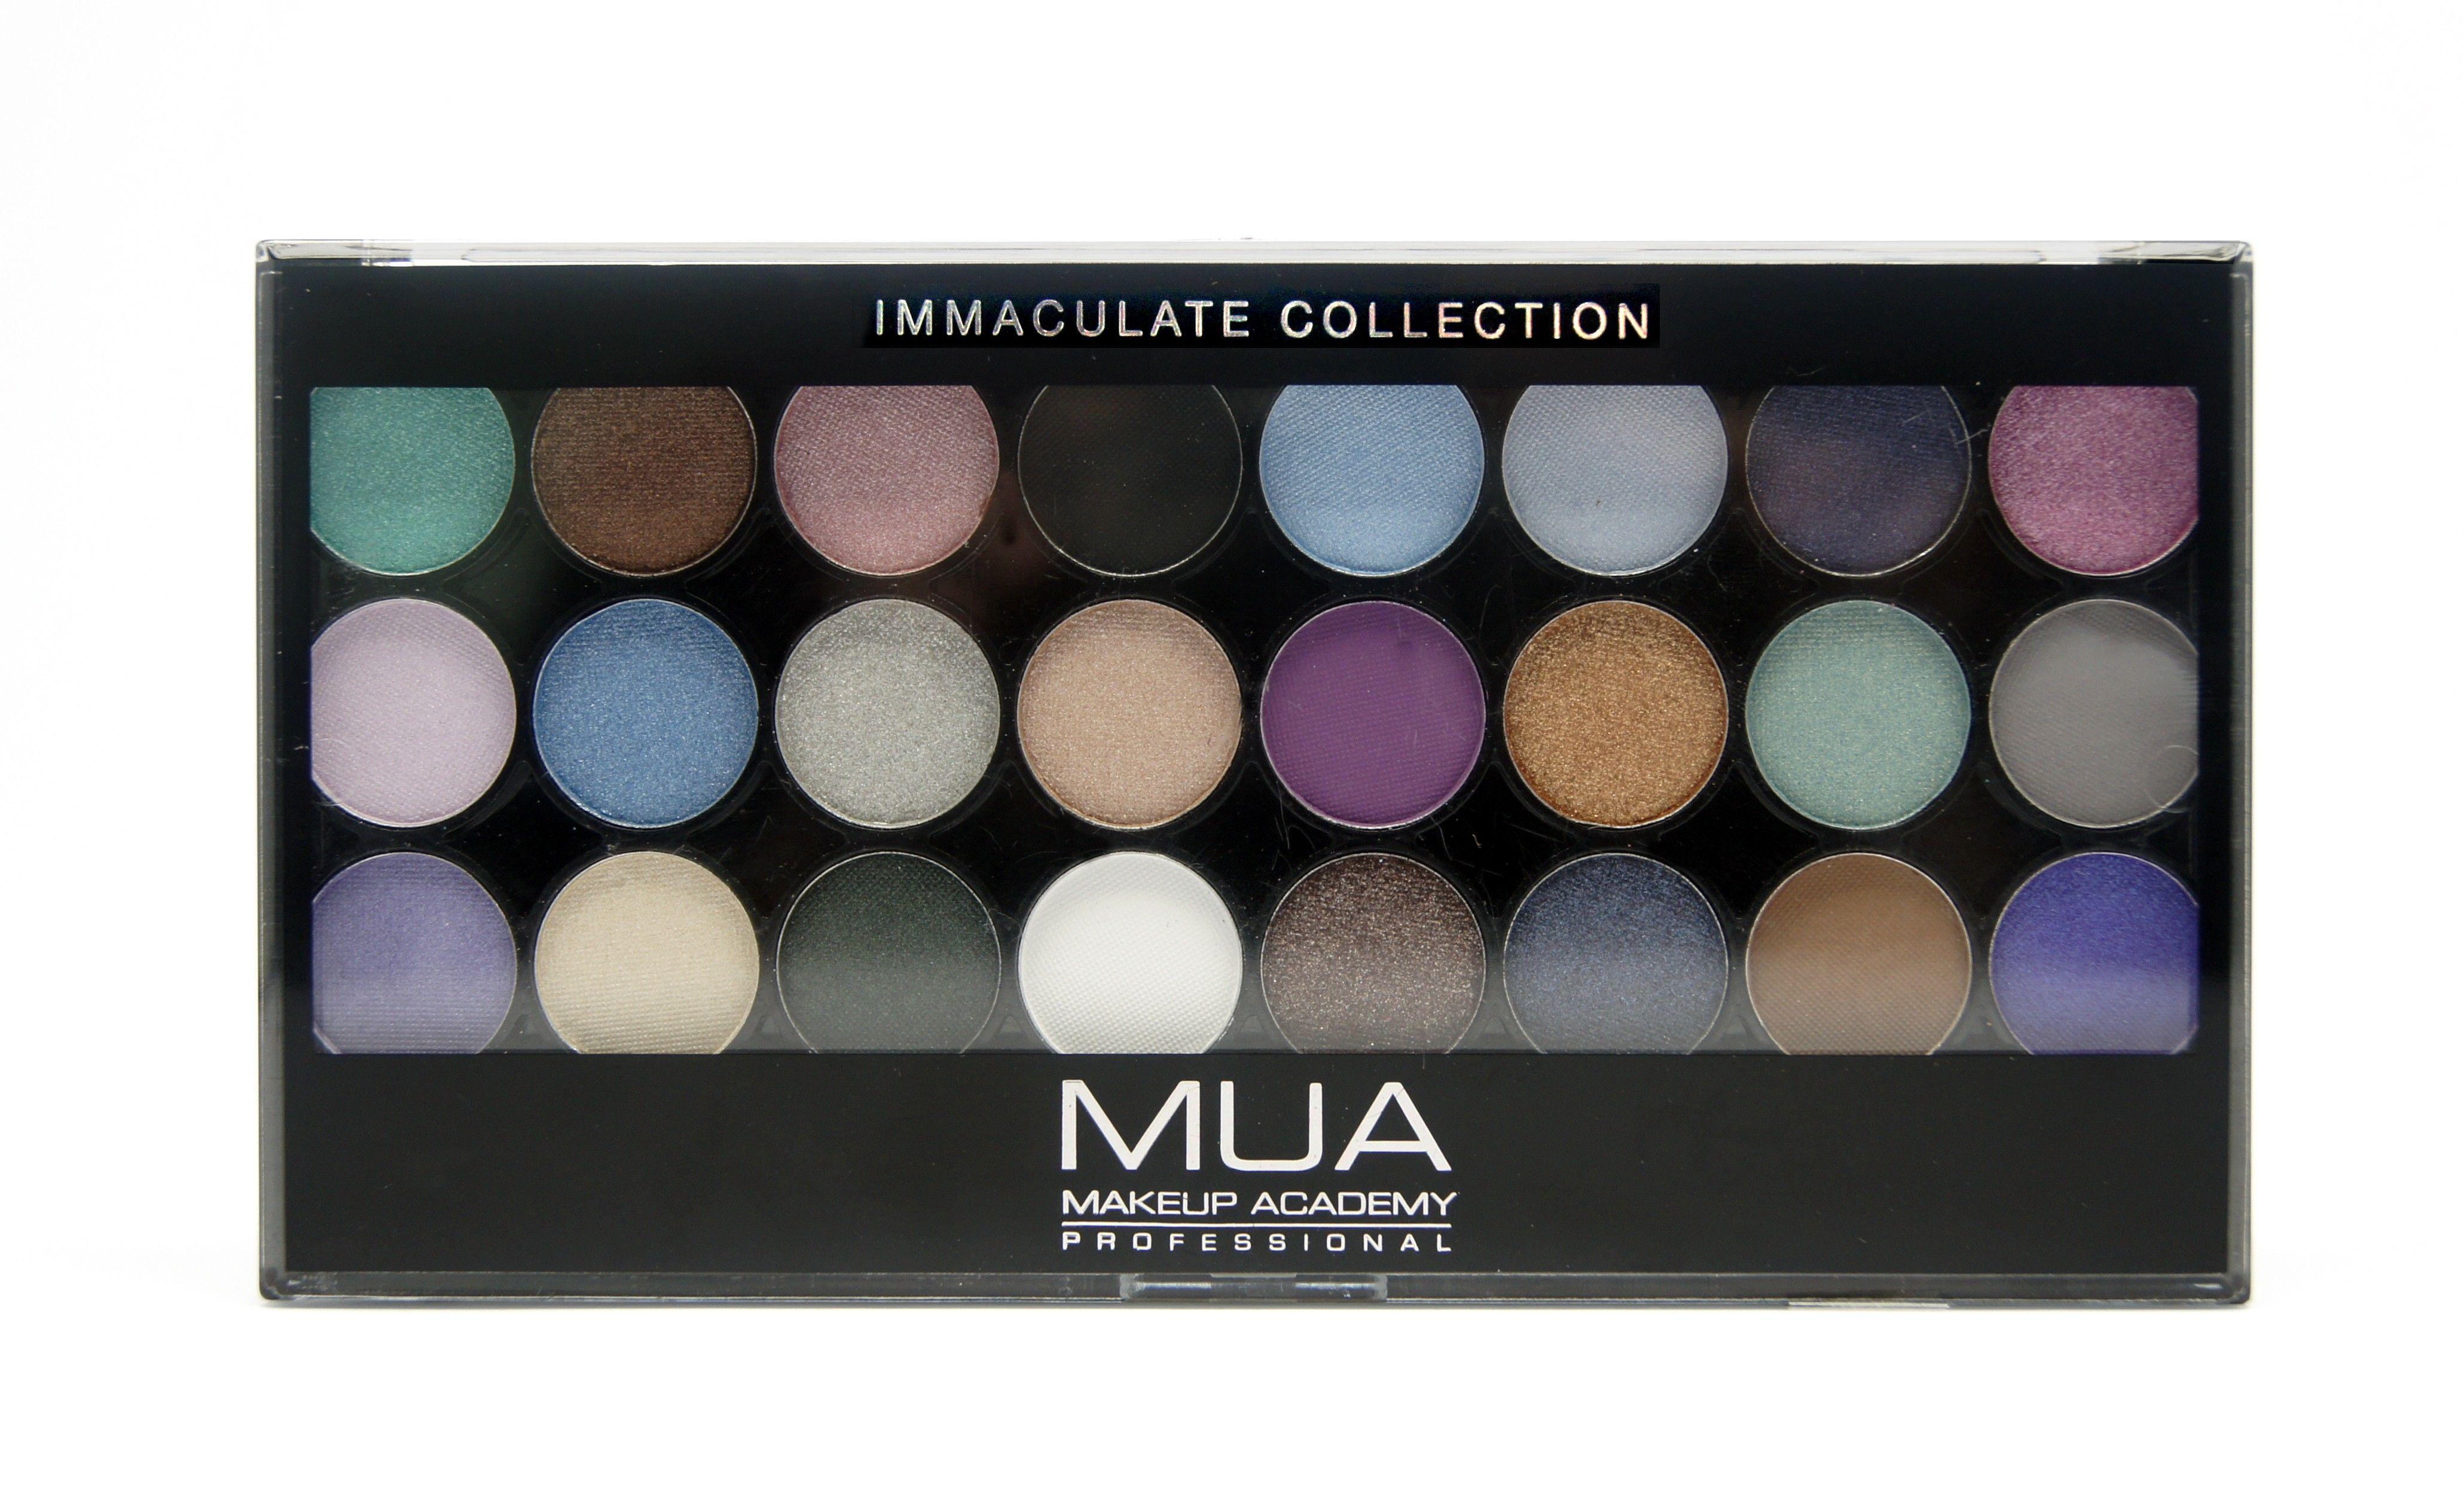 24 Shade Immaculate Collection Palette MUA Make up